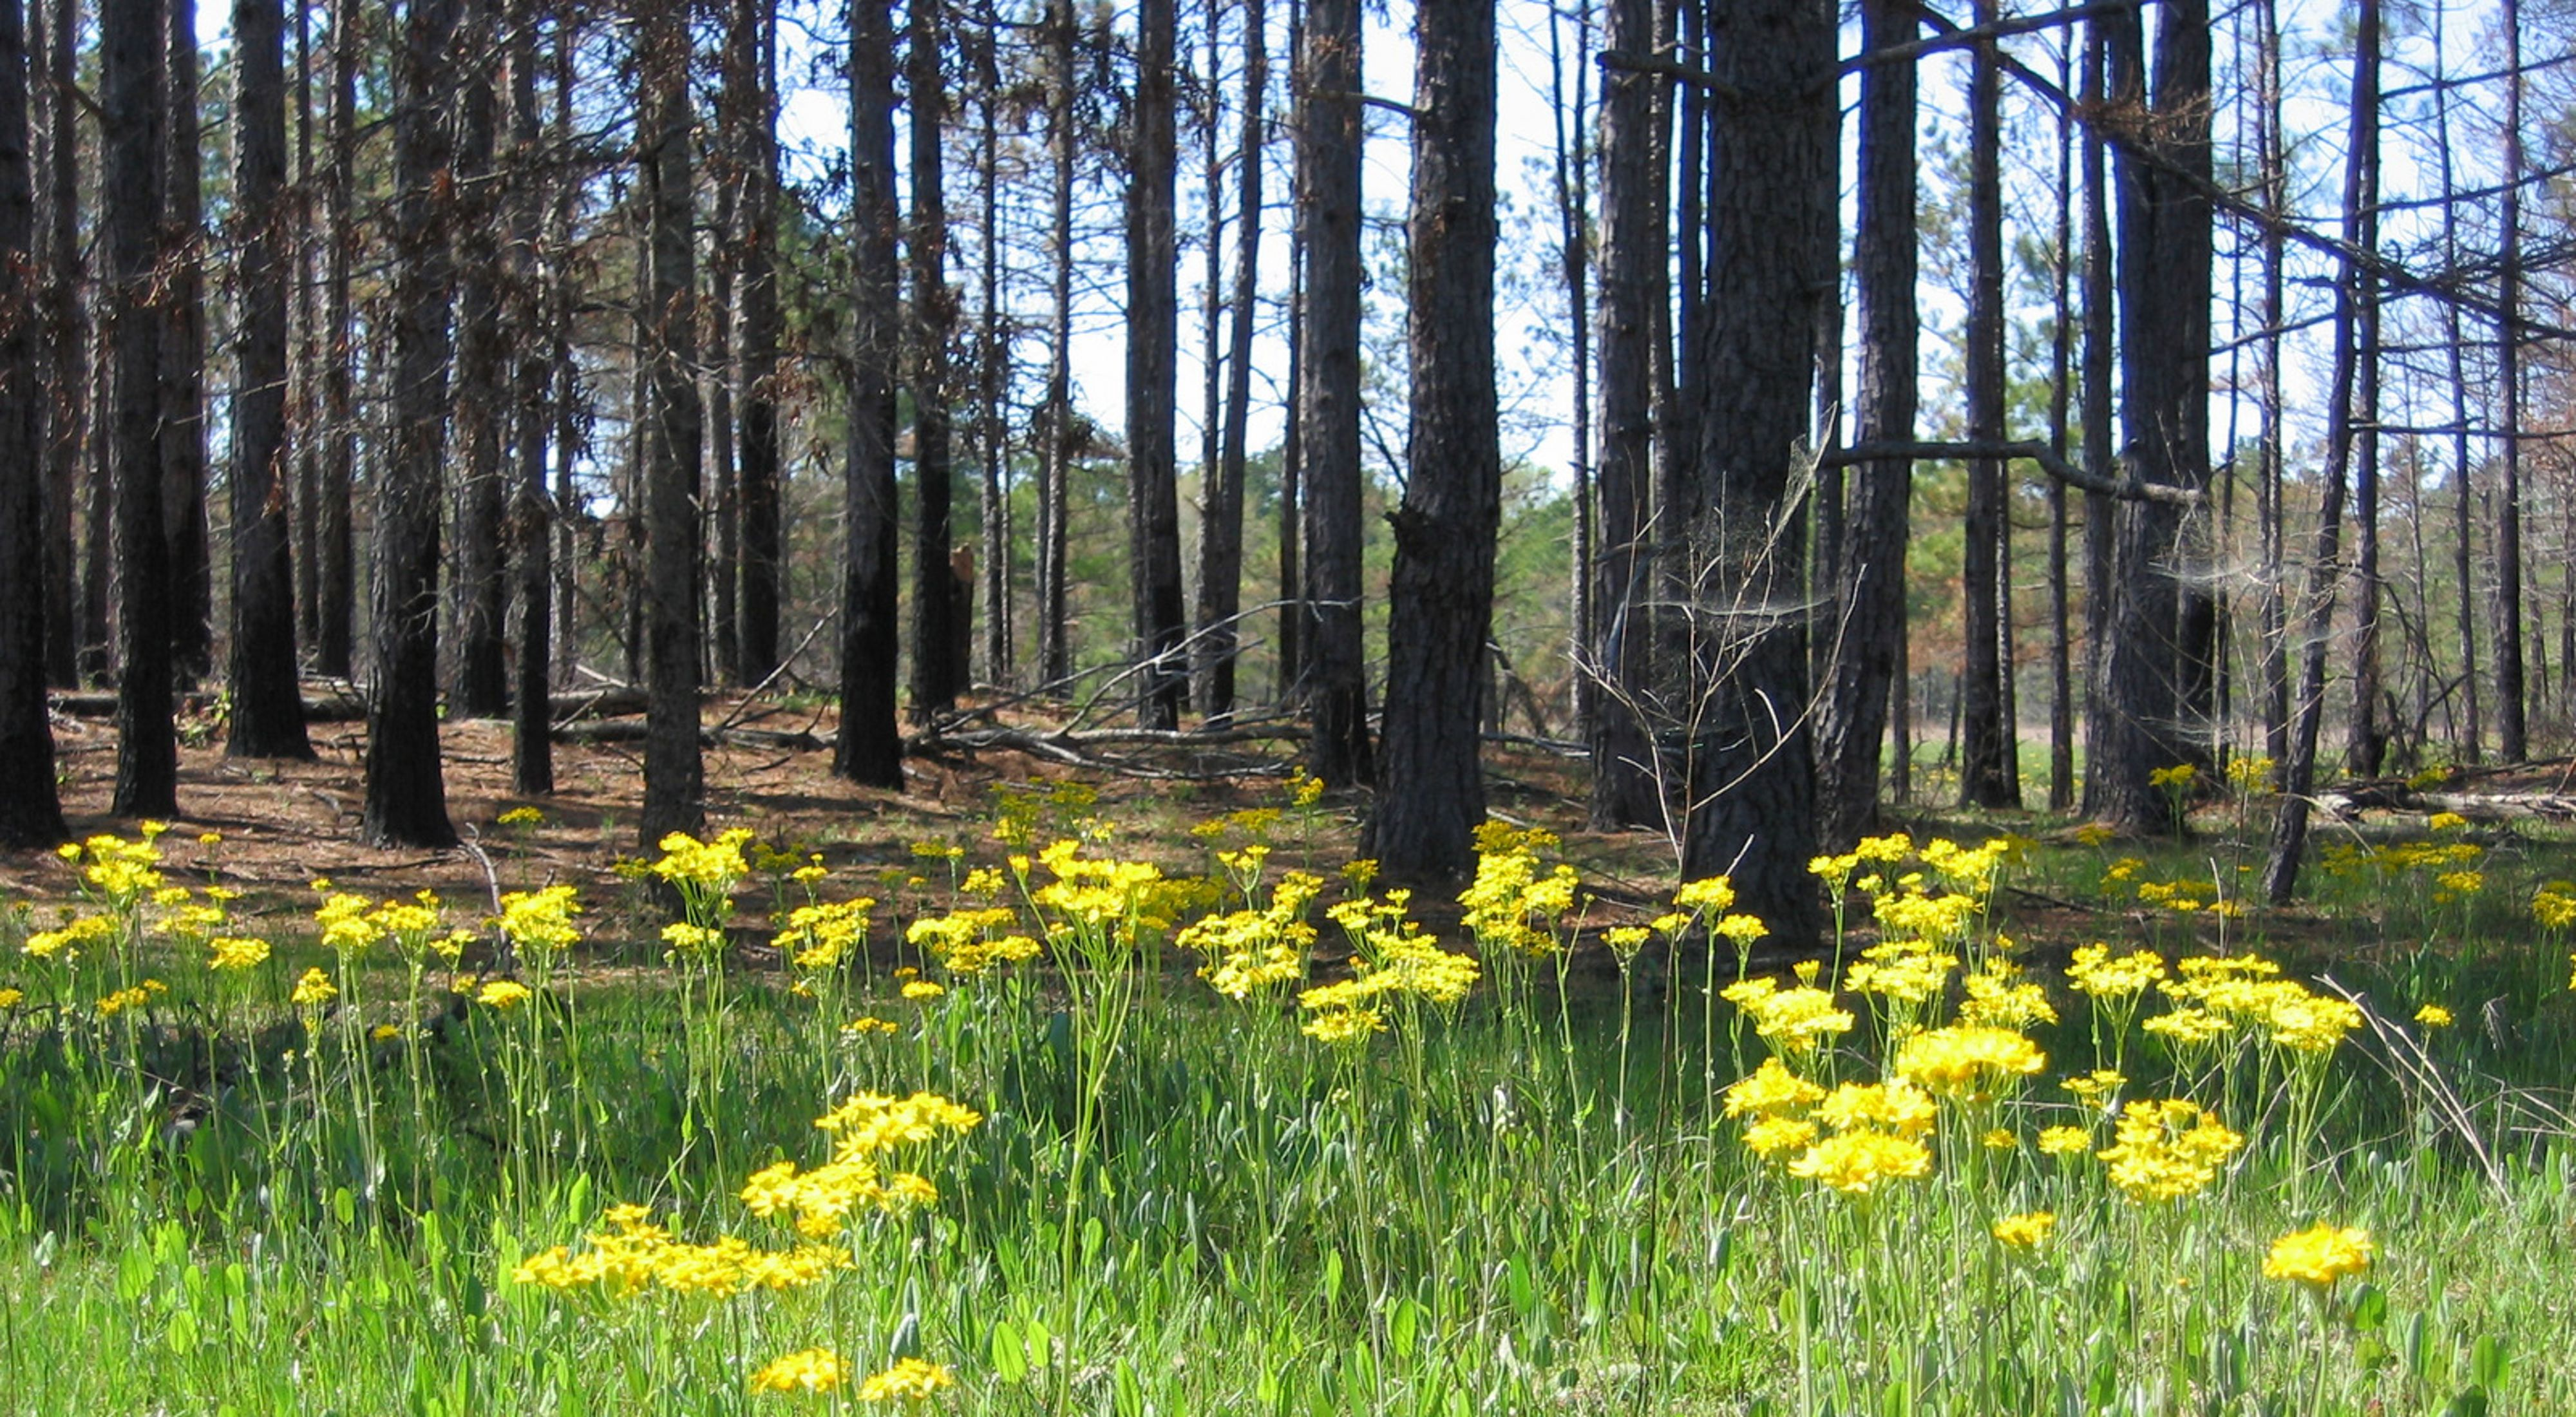 (ALL RIGHTS) The Nature Conservancy's emphasis at Kingsland Prairie Preserve is on ecologically compatible forestry: working with forest landowners to demonstrate the connections between ecosystem health and economic return. Photo (C) TNC